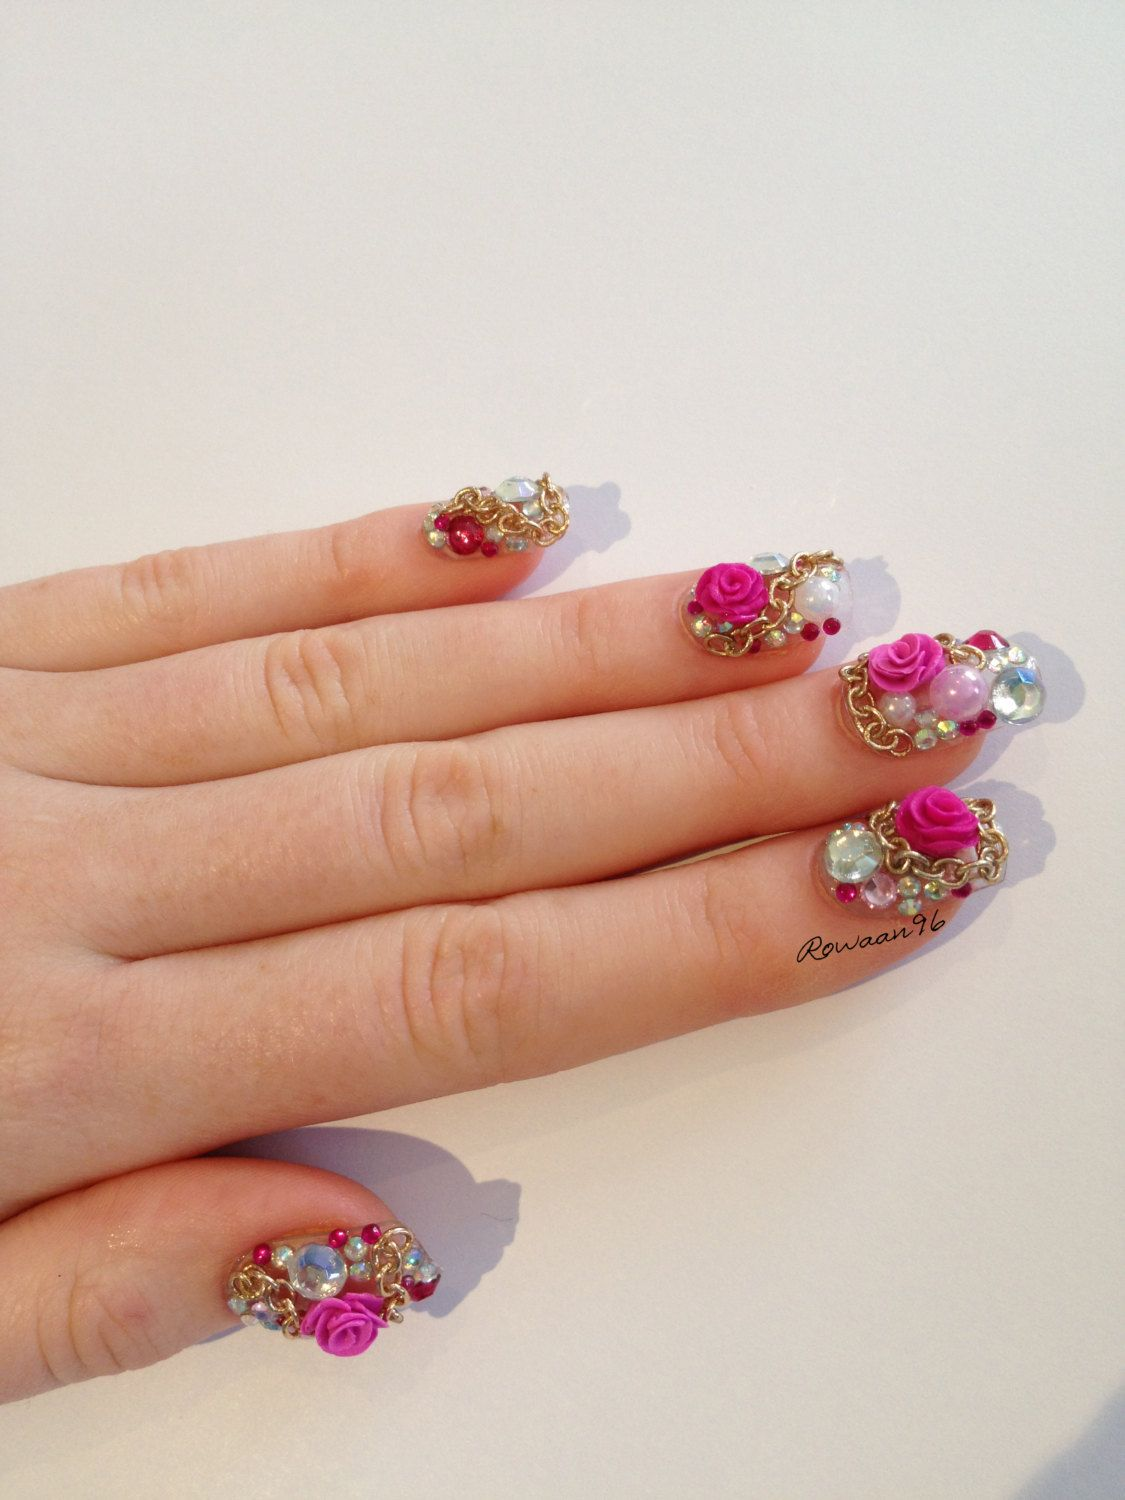 Ultimate summer girly nails